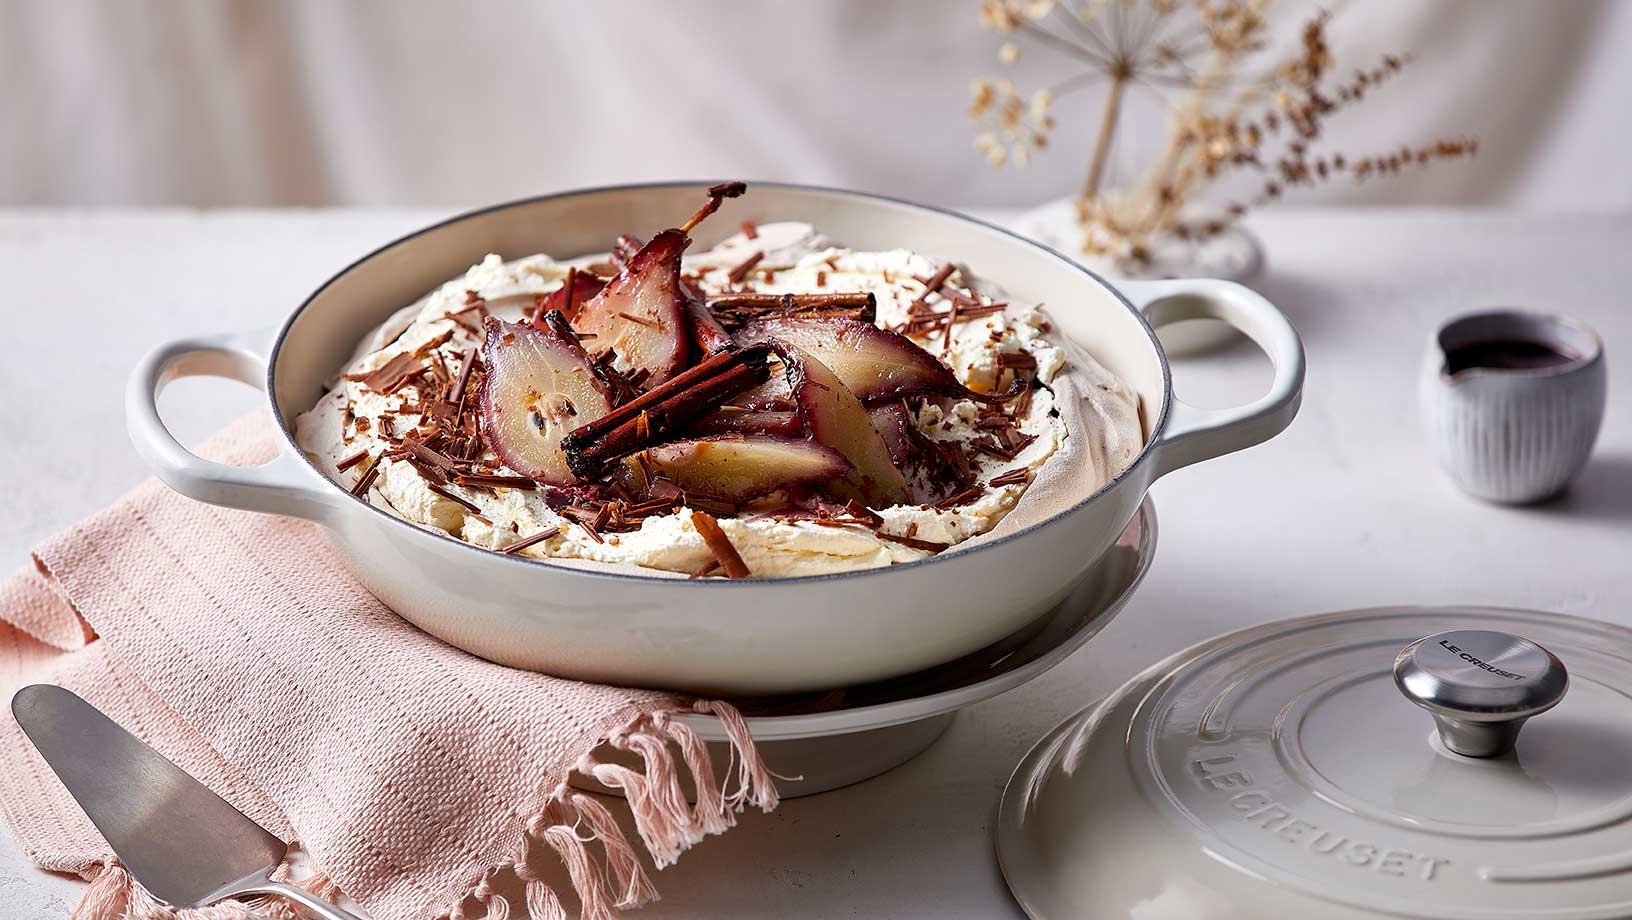 Chocolate and Poached Pear Pavlova